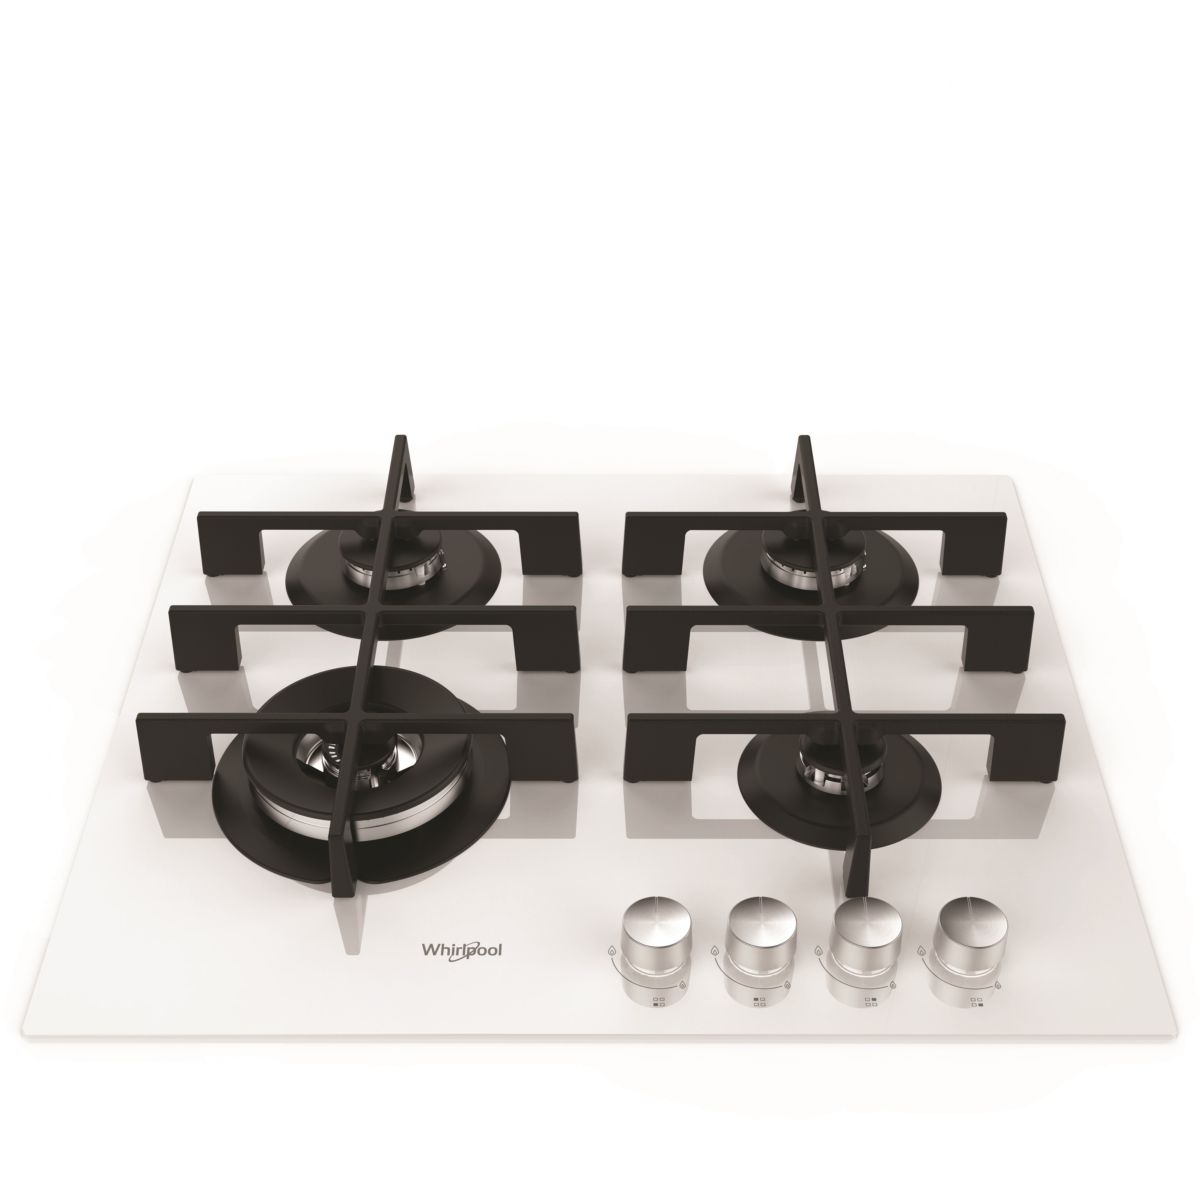 Table gaz WHIRLPOOL GOW6423WH